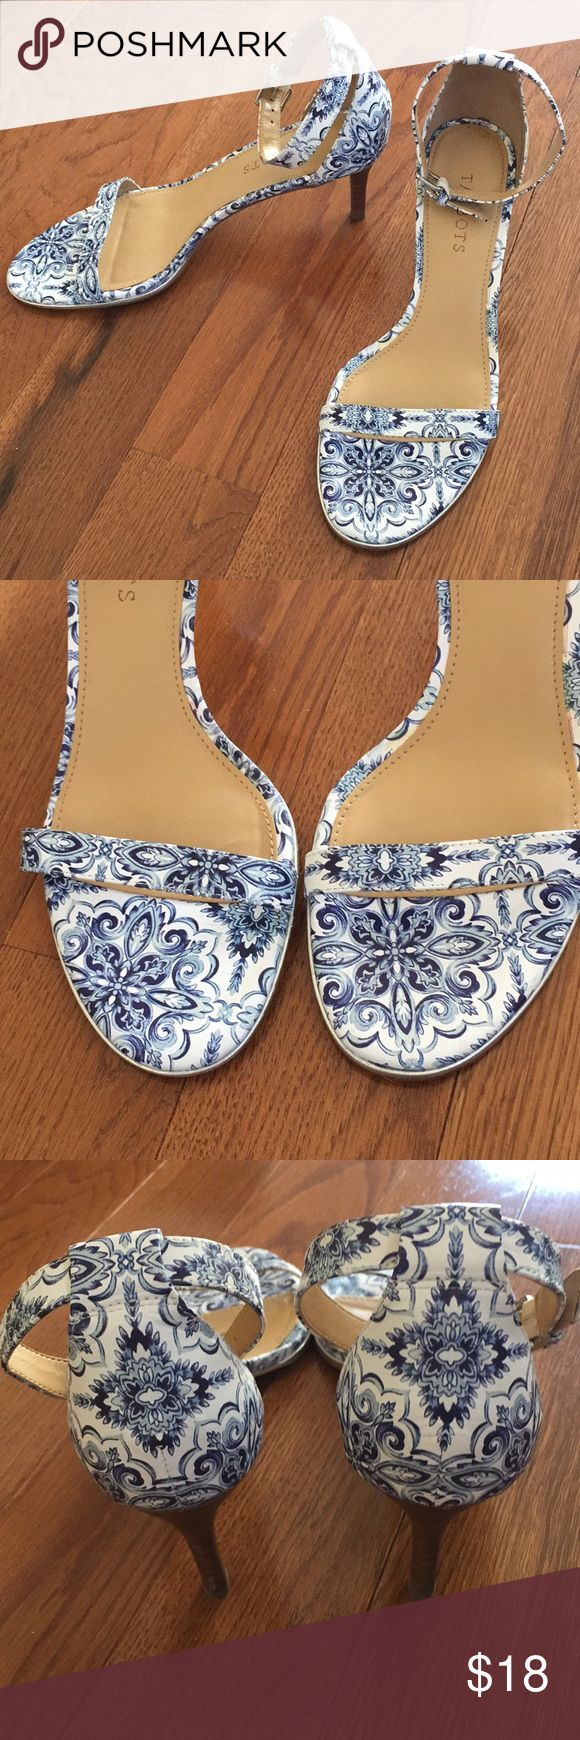 Talbots Heeled Sandals Gorgeous blue/white patterned heel with on-trend ankle silver toned ankle strap. Leather upper/man-made lower. Just some wear to bottoms as pictured and reflected in price Talbots Shoes Heels